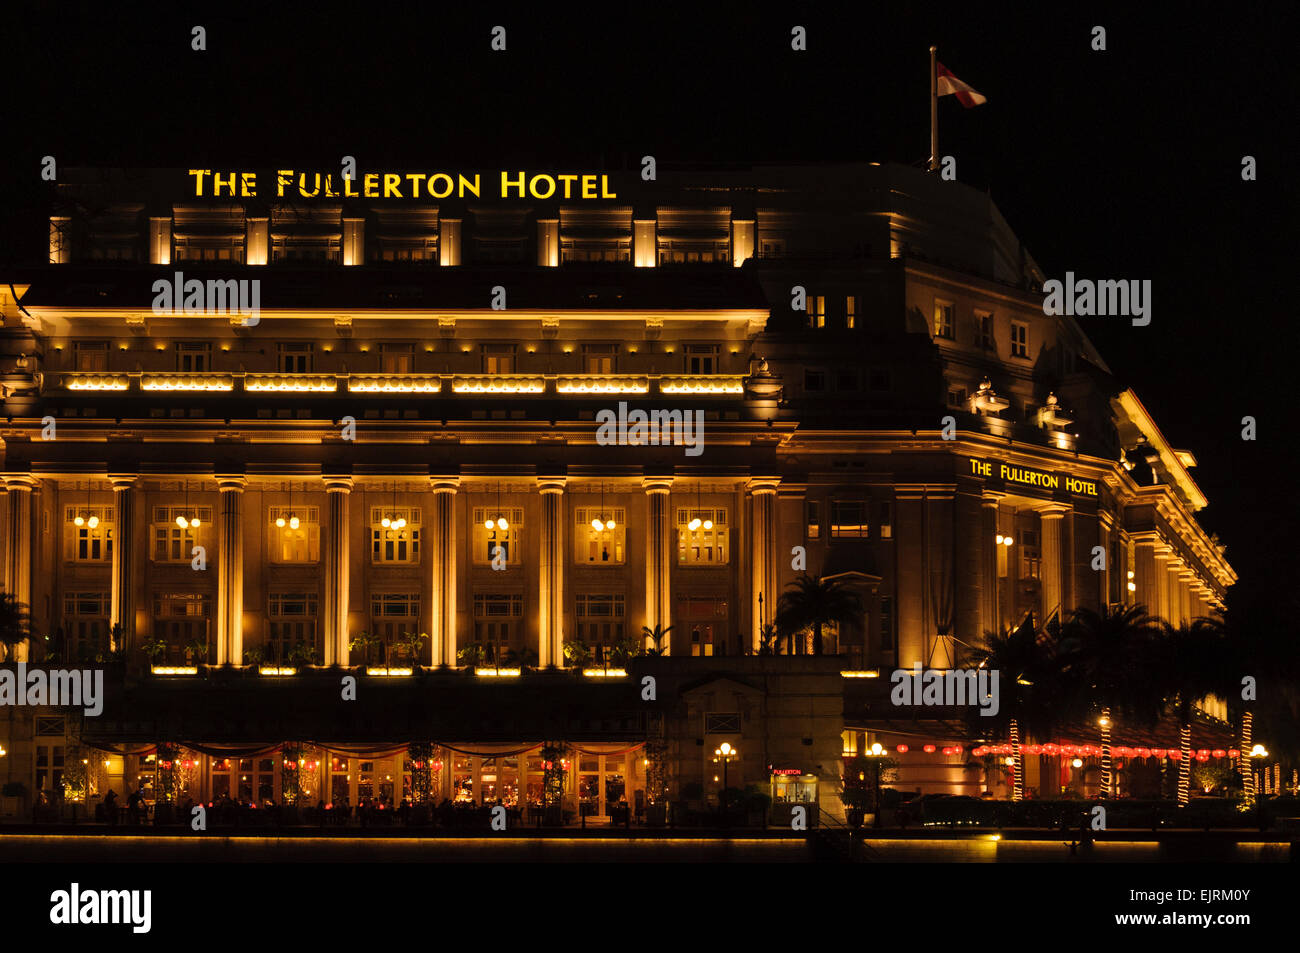 Fullerton hotel, a five-star luxury hotel in Singapore. - Stock Image